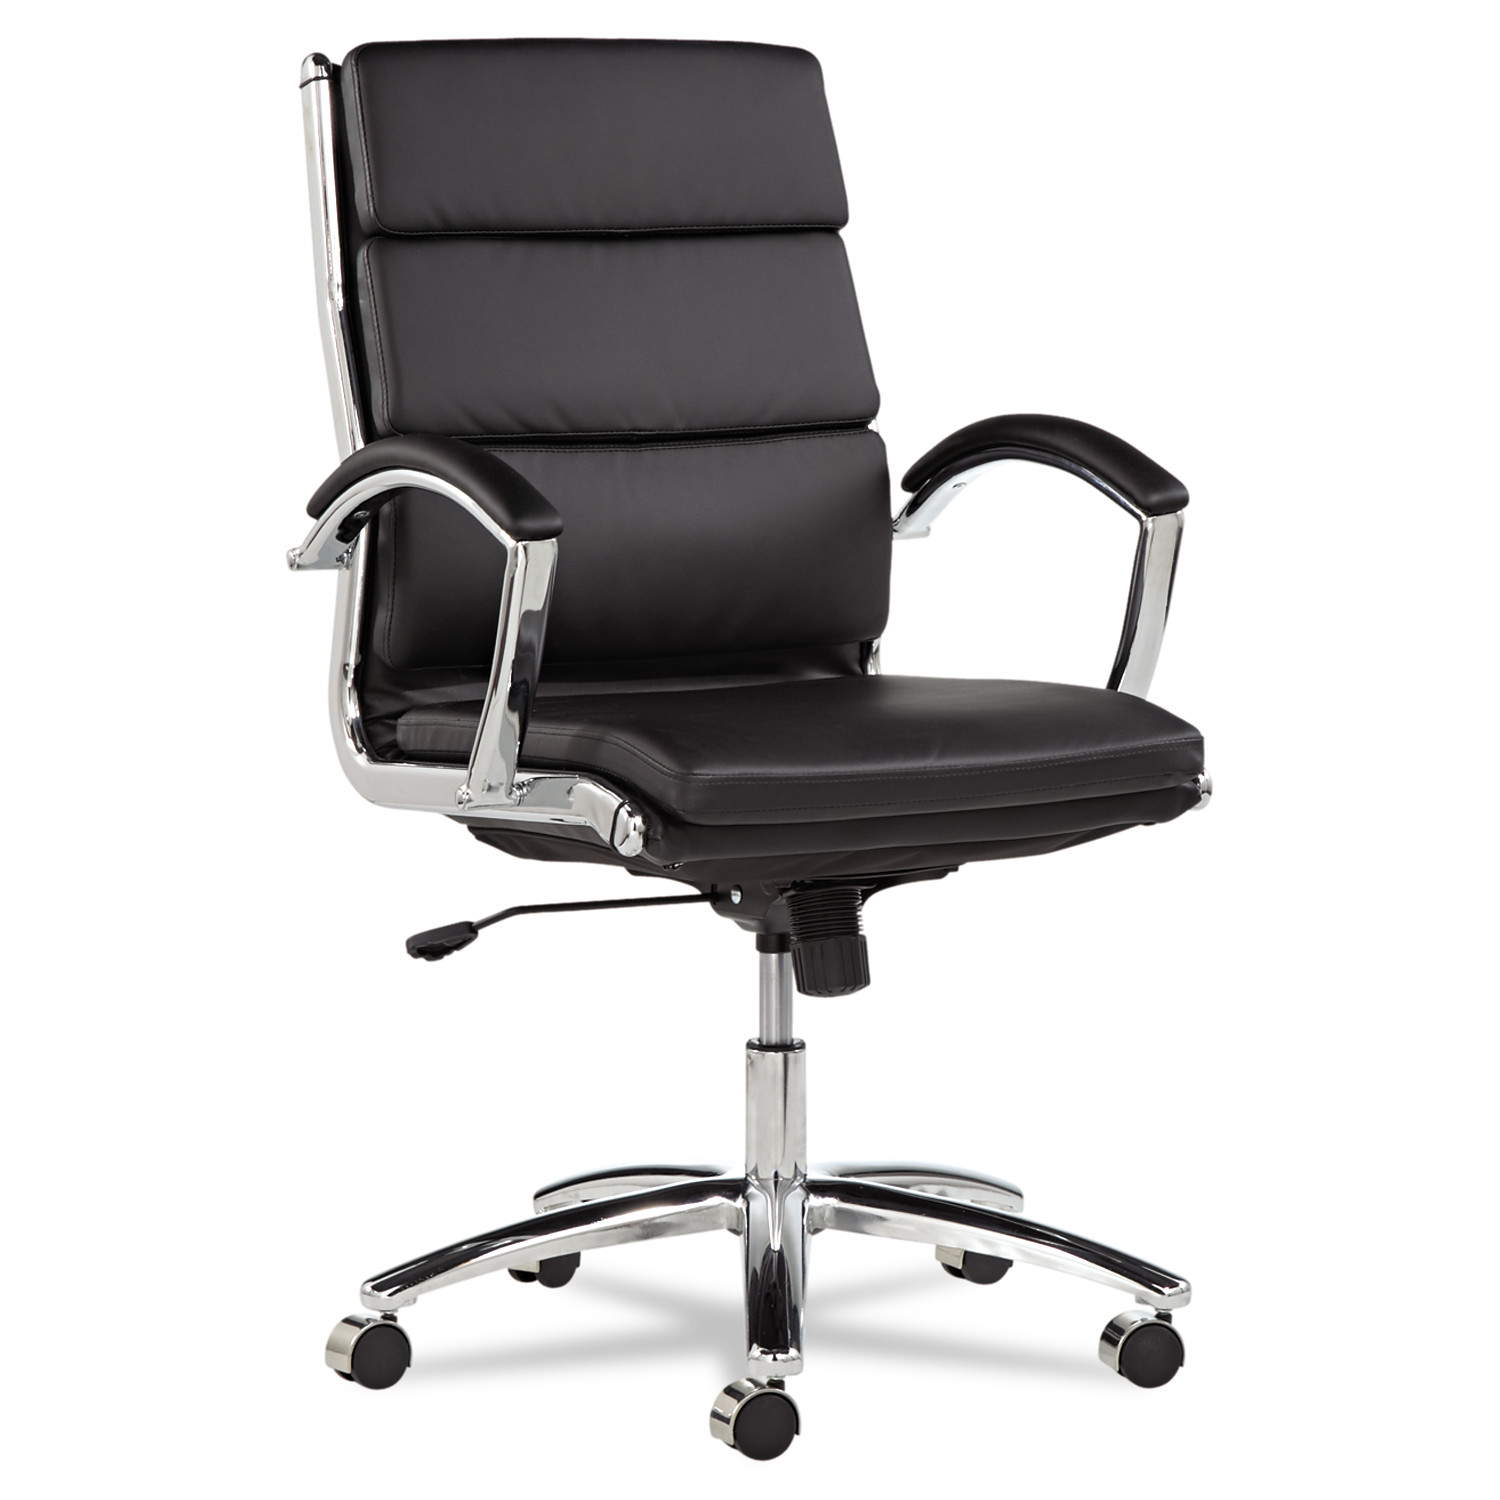 Alera Neratoli Series Mid-Back Swivel/Tilt Chair, Black Leather